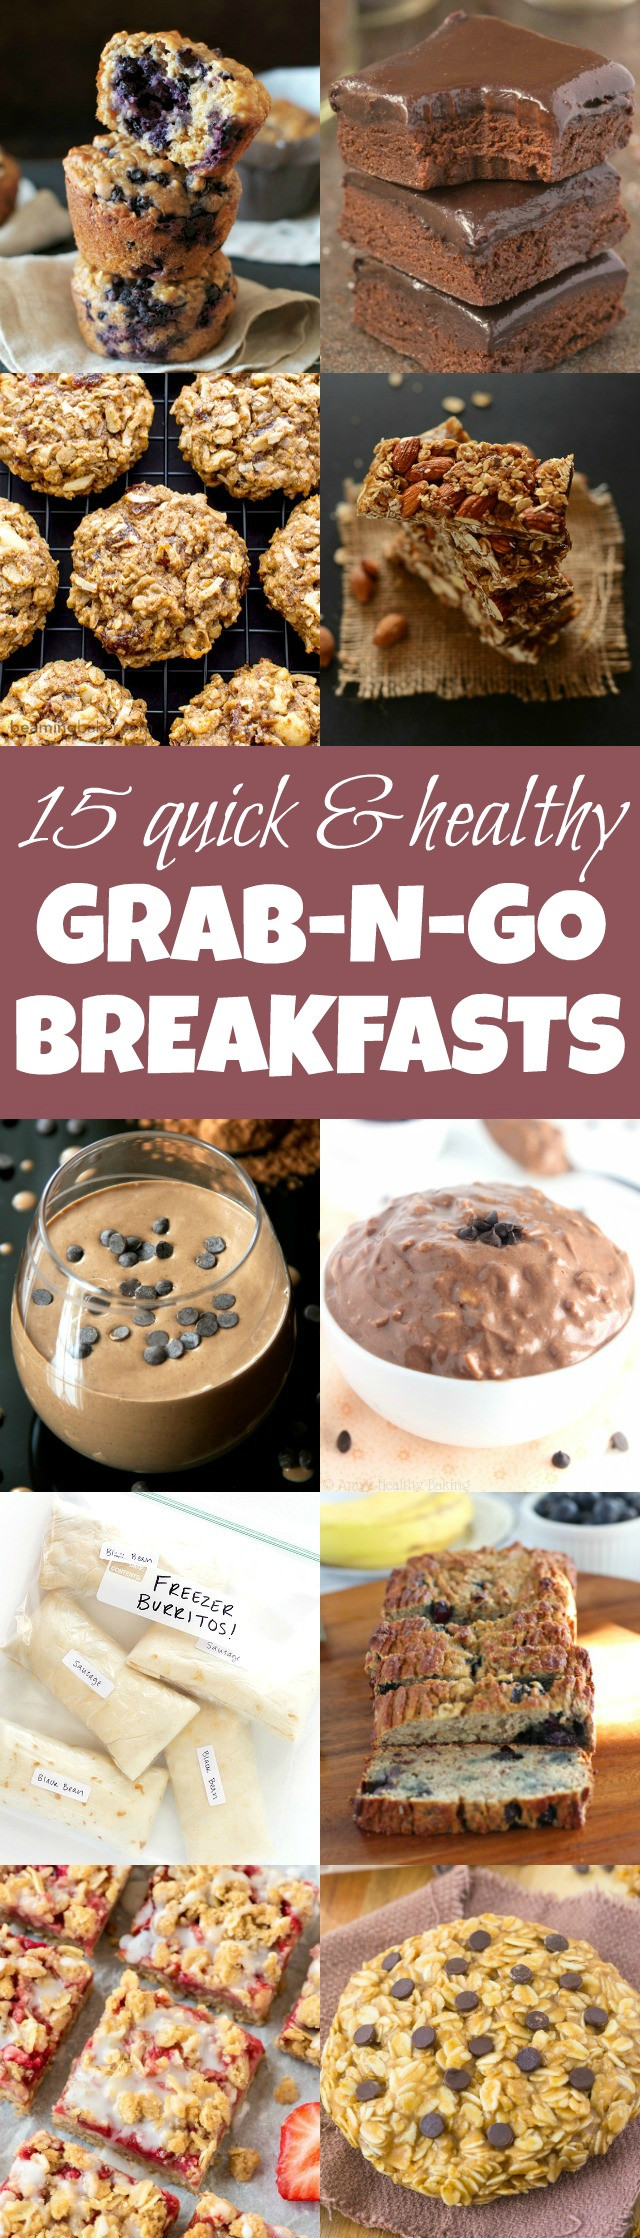 Healthy Fast Breakfast Recipes  15 Quick & Healthy Grab n Go Breakfasts